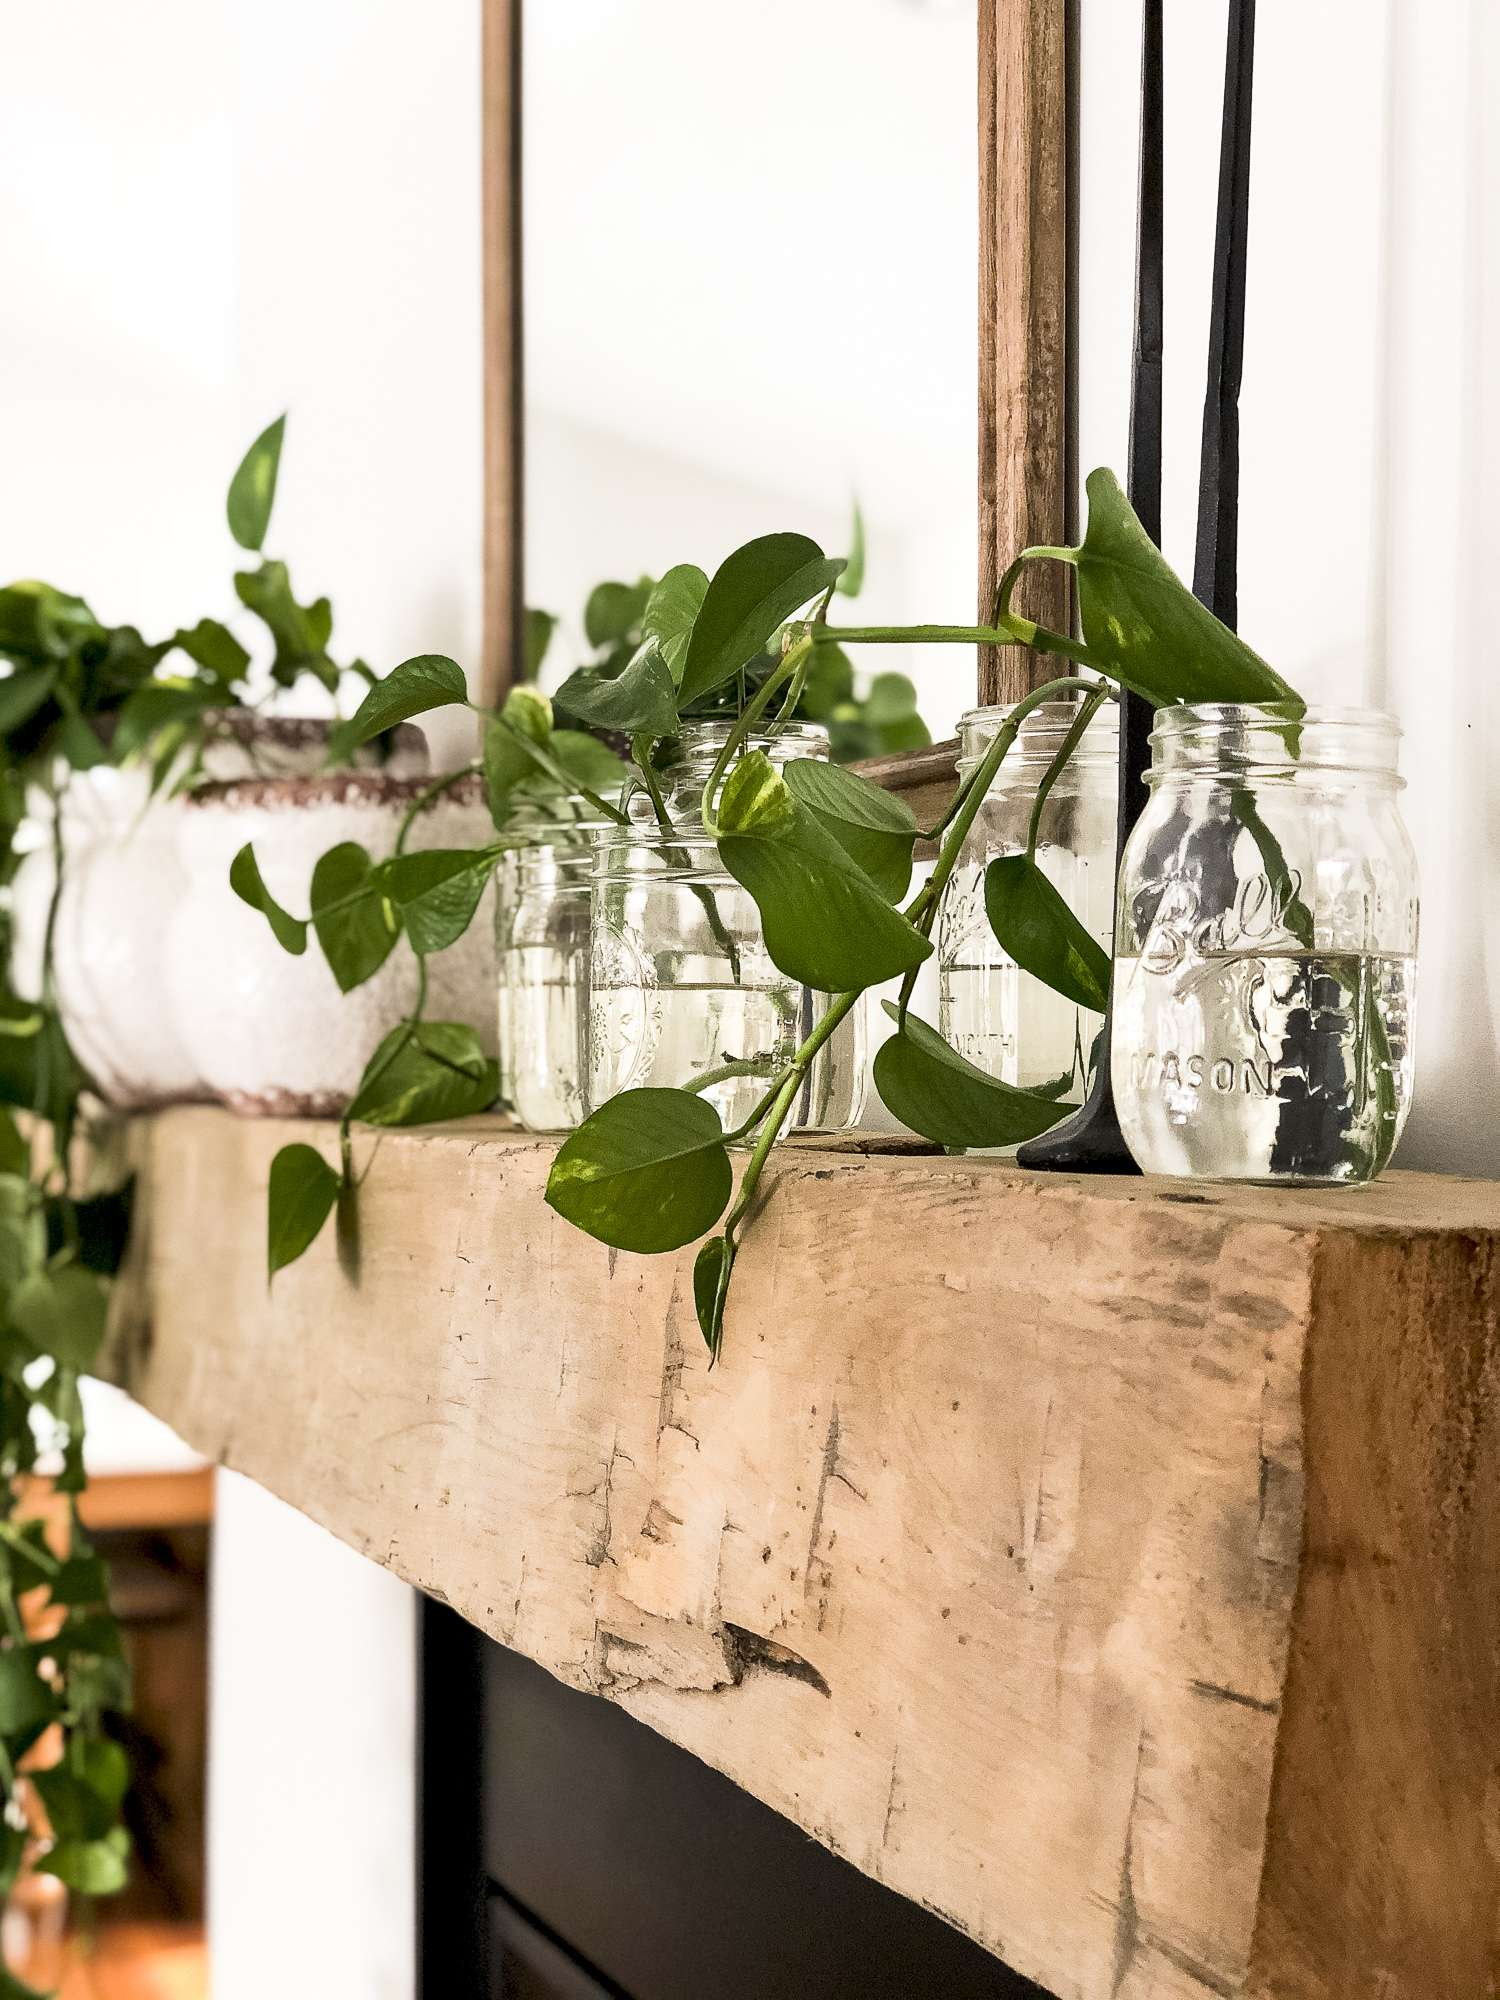 Styling spring mantel decor with plants is an easy task! Learn how easy propagating pothos is, while letting this indoor plant serve as decor too!